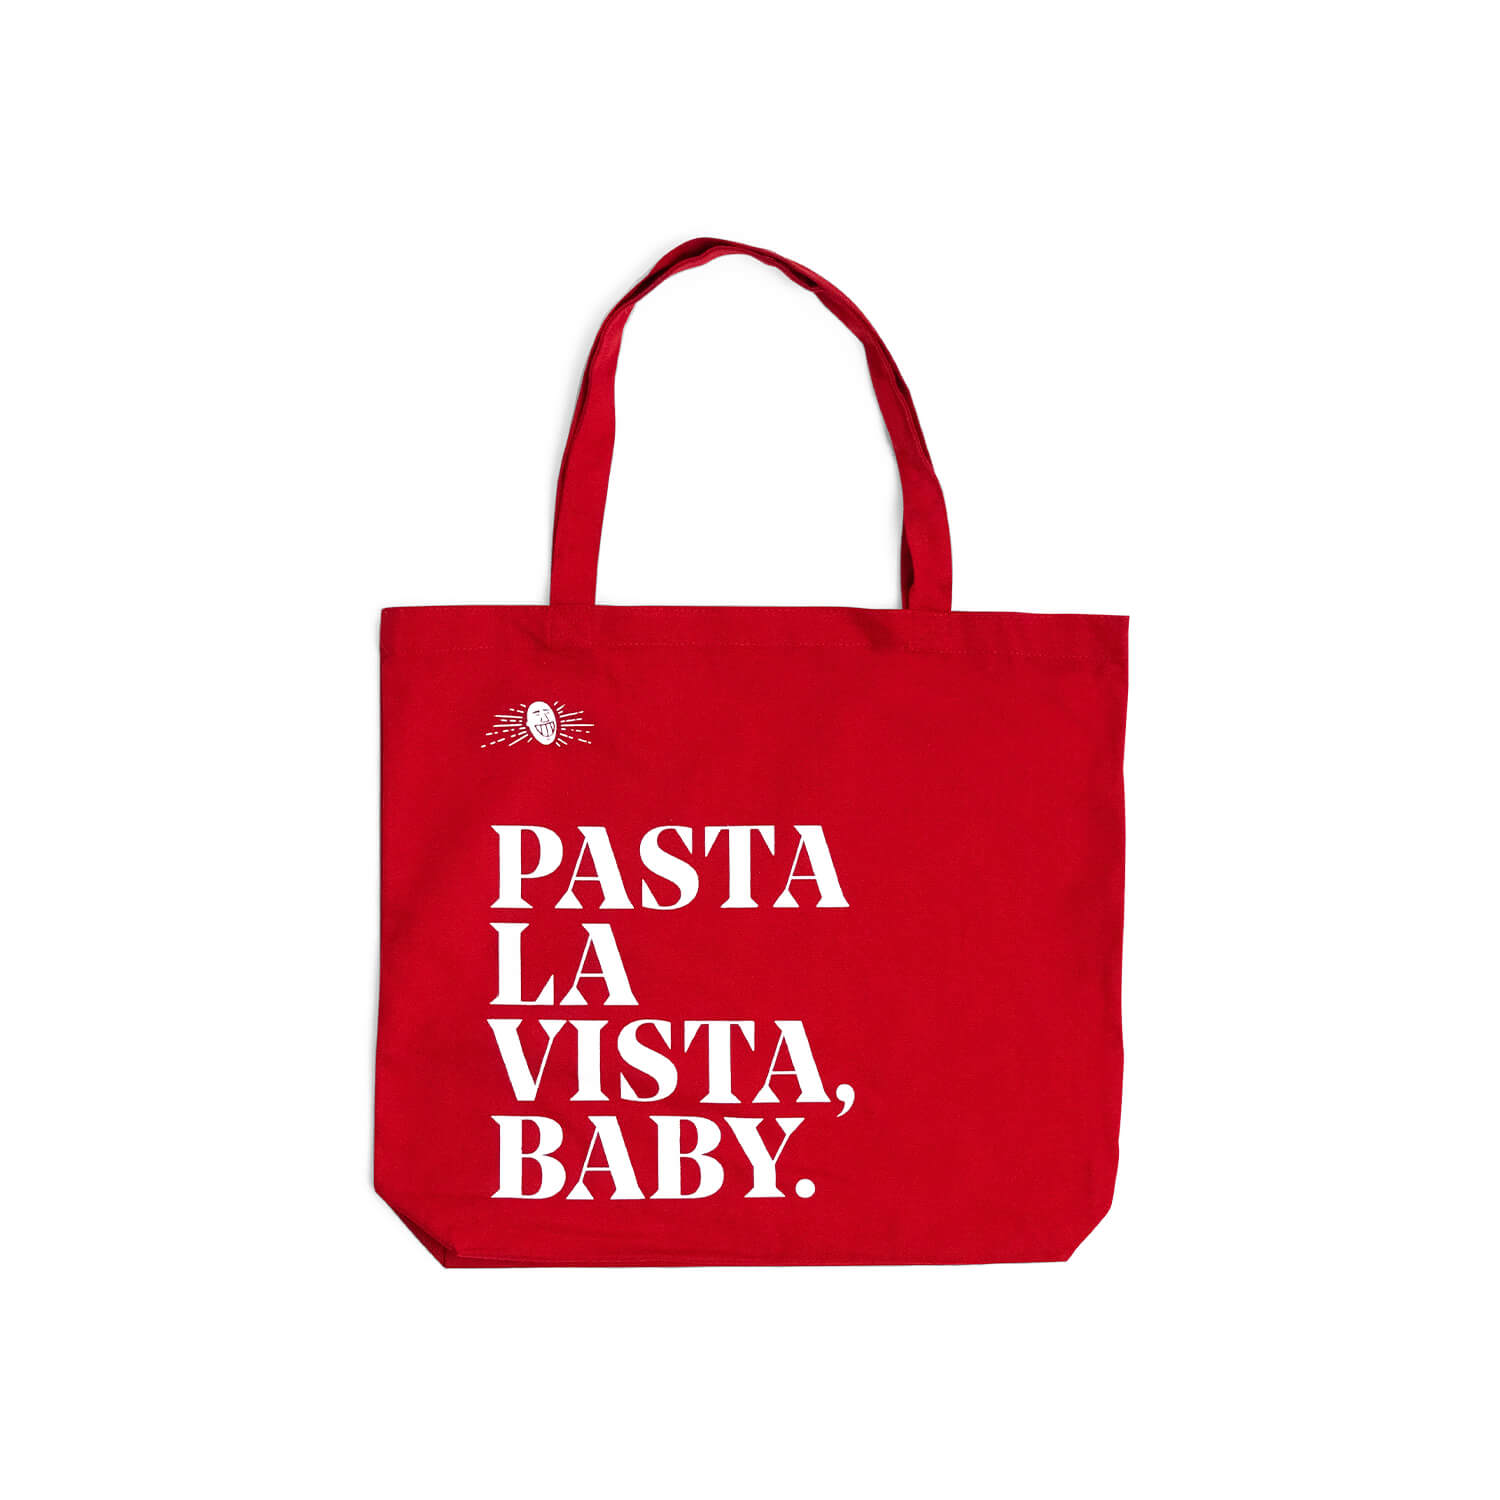 Stefano Faita Tote Bag